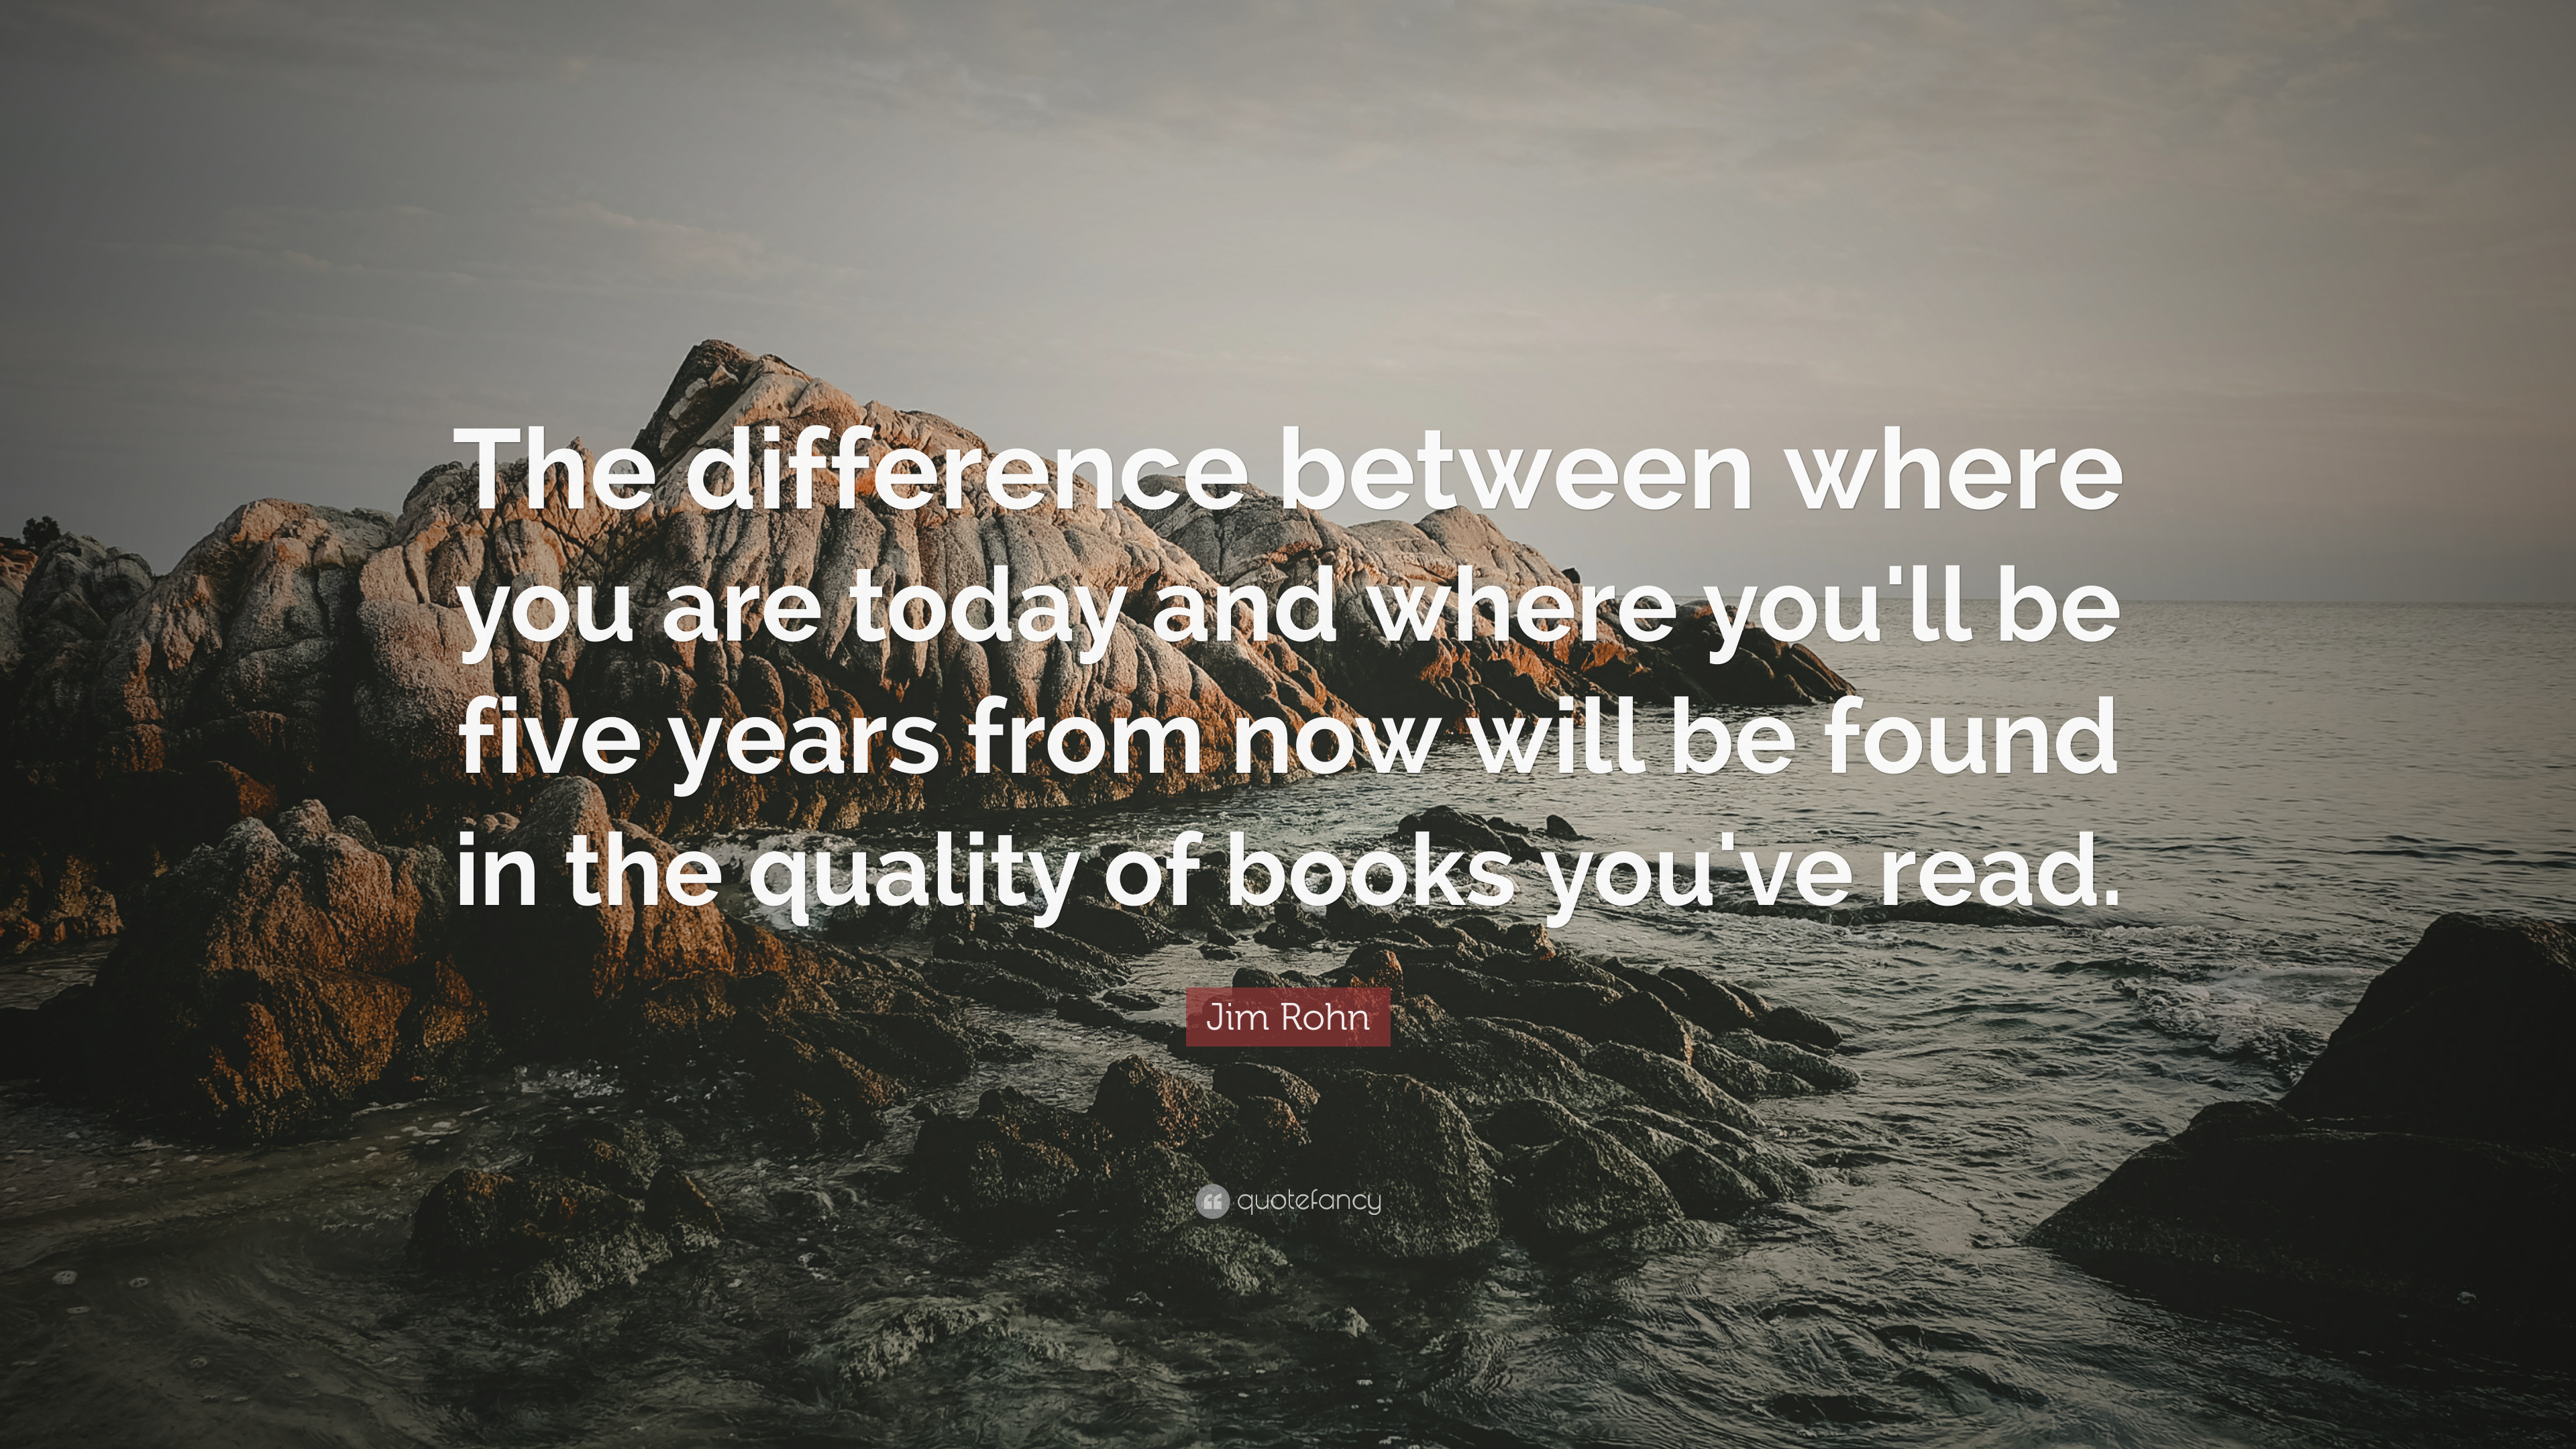 Book where will you be five years from today